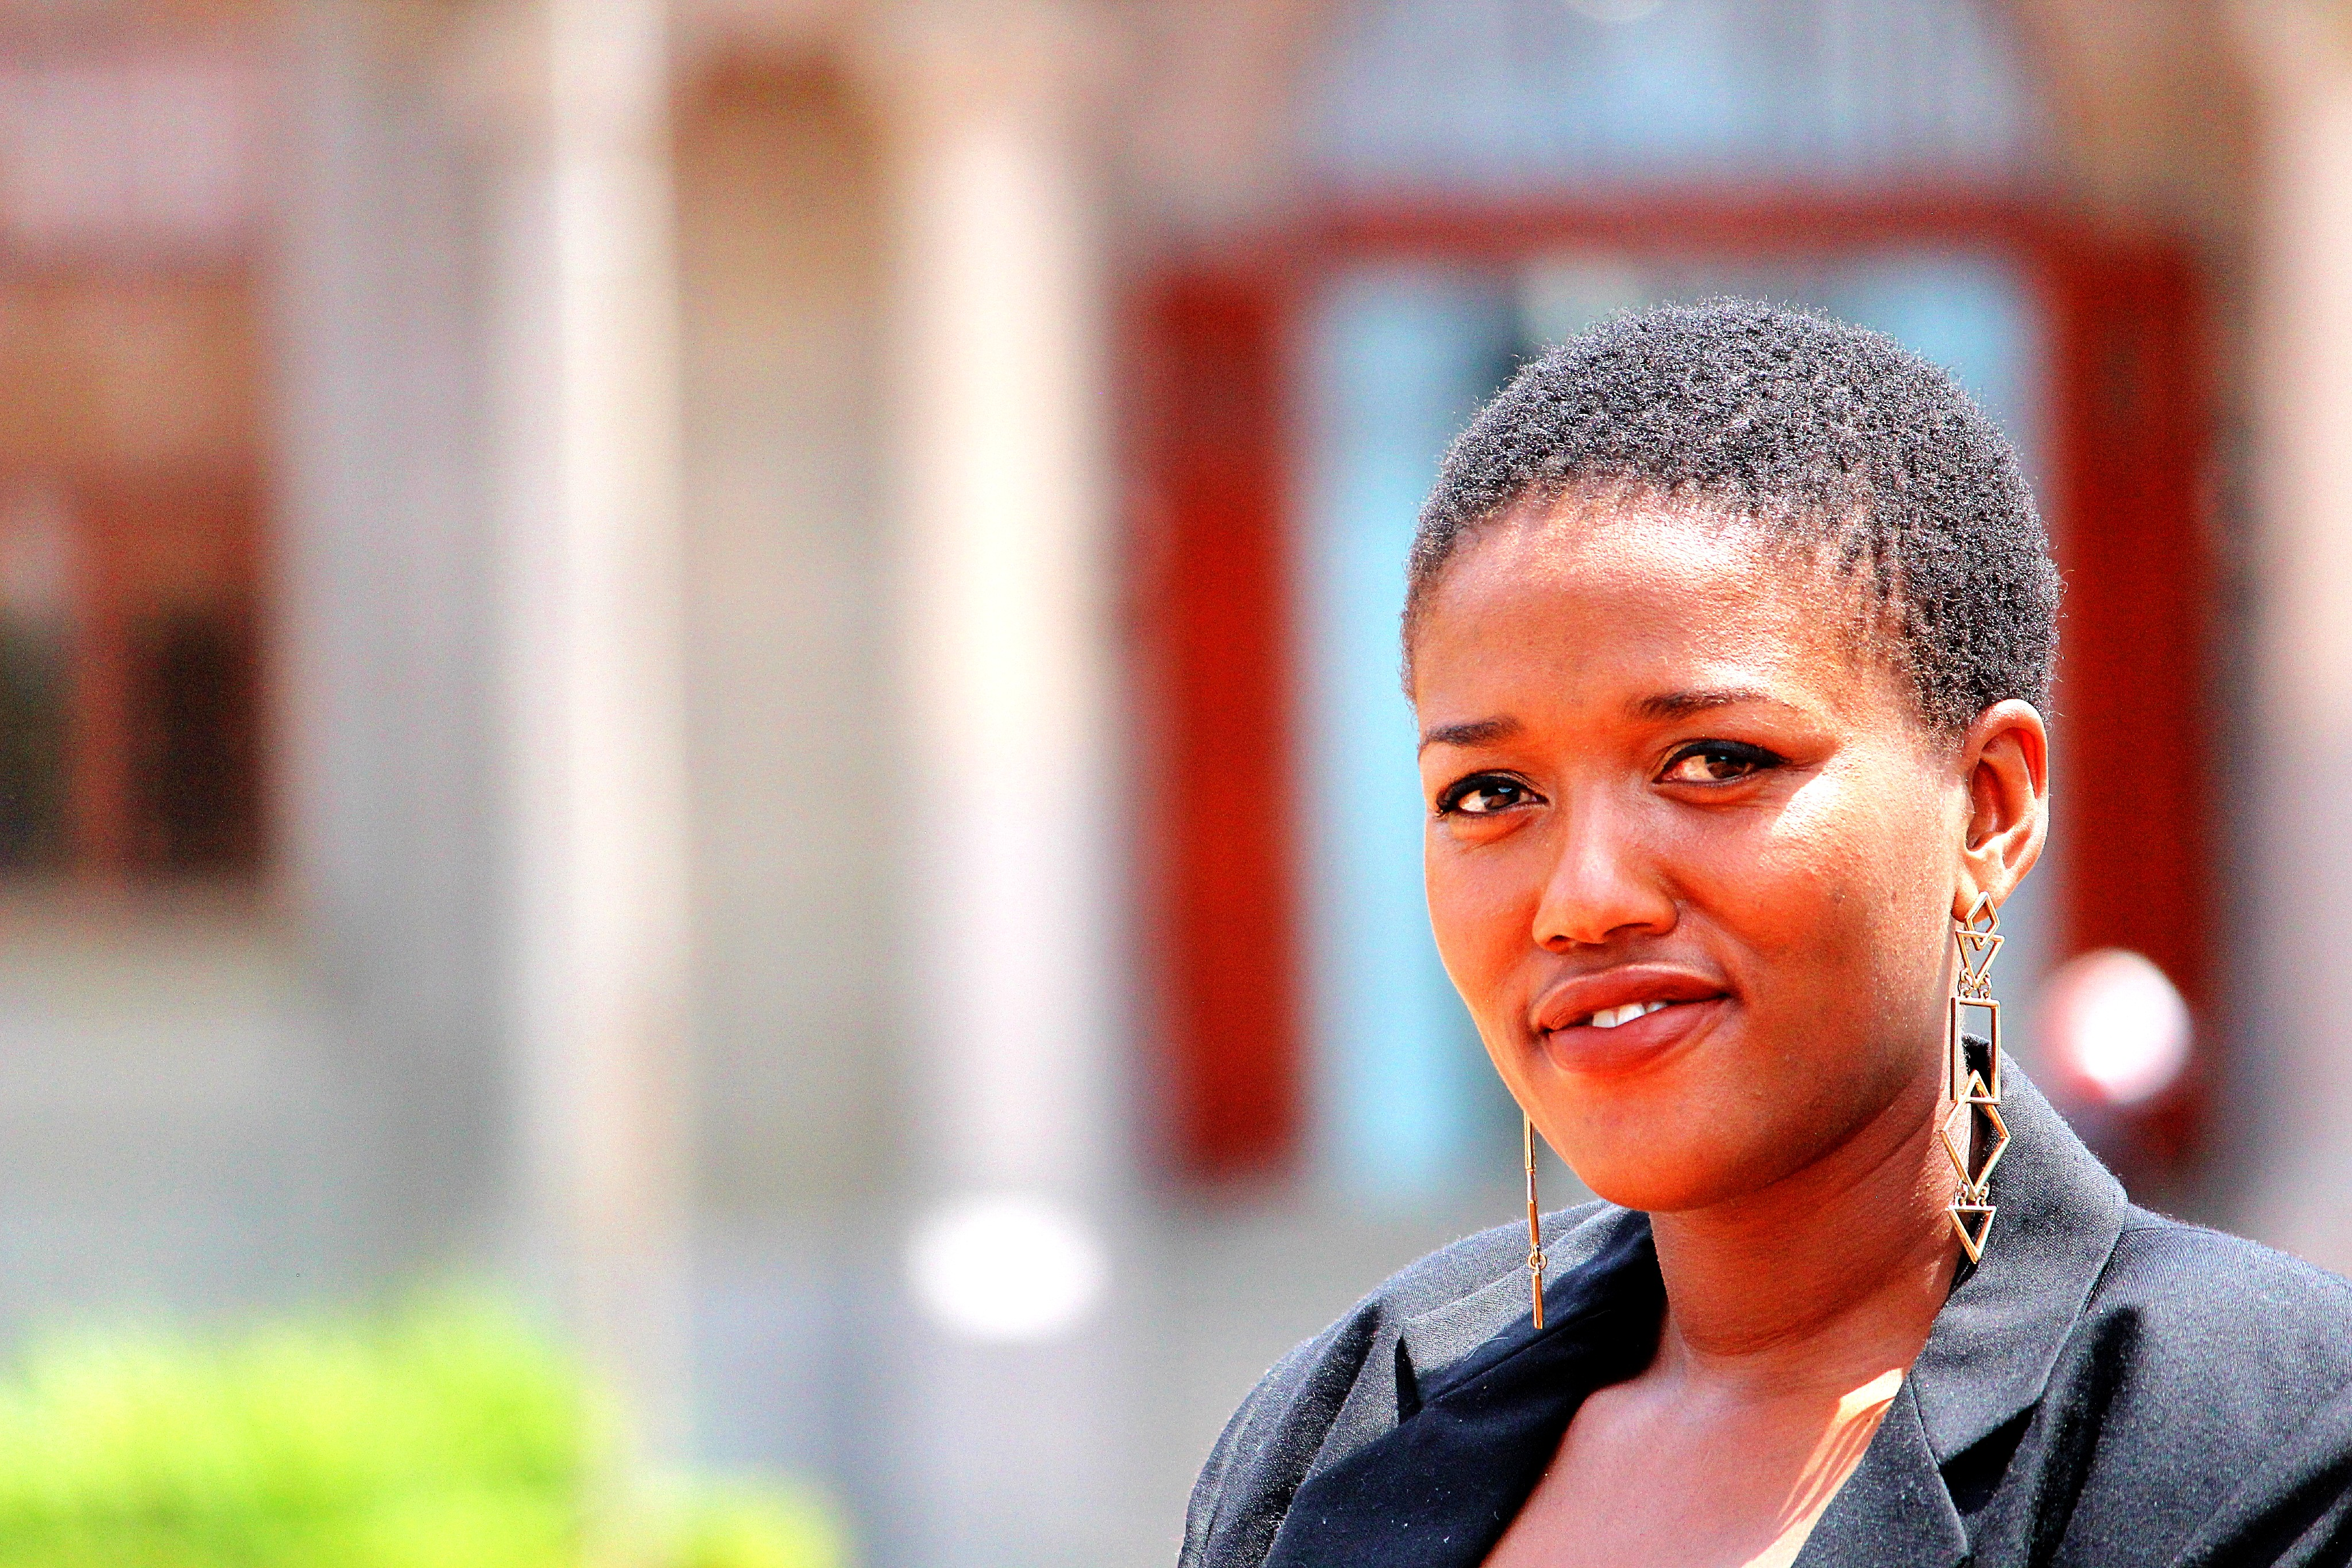 Nombulelo Shange is lecturer in the Department of Sociology, University of the Free State (UFS).